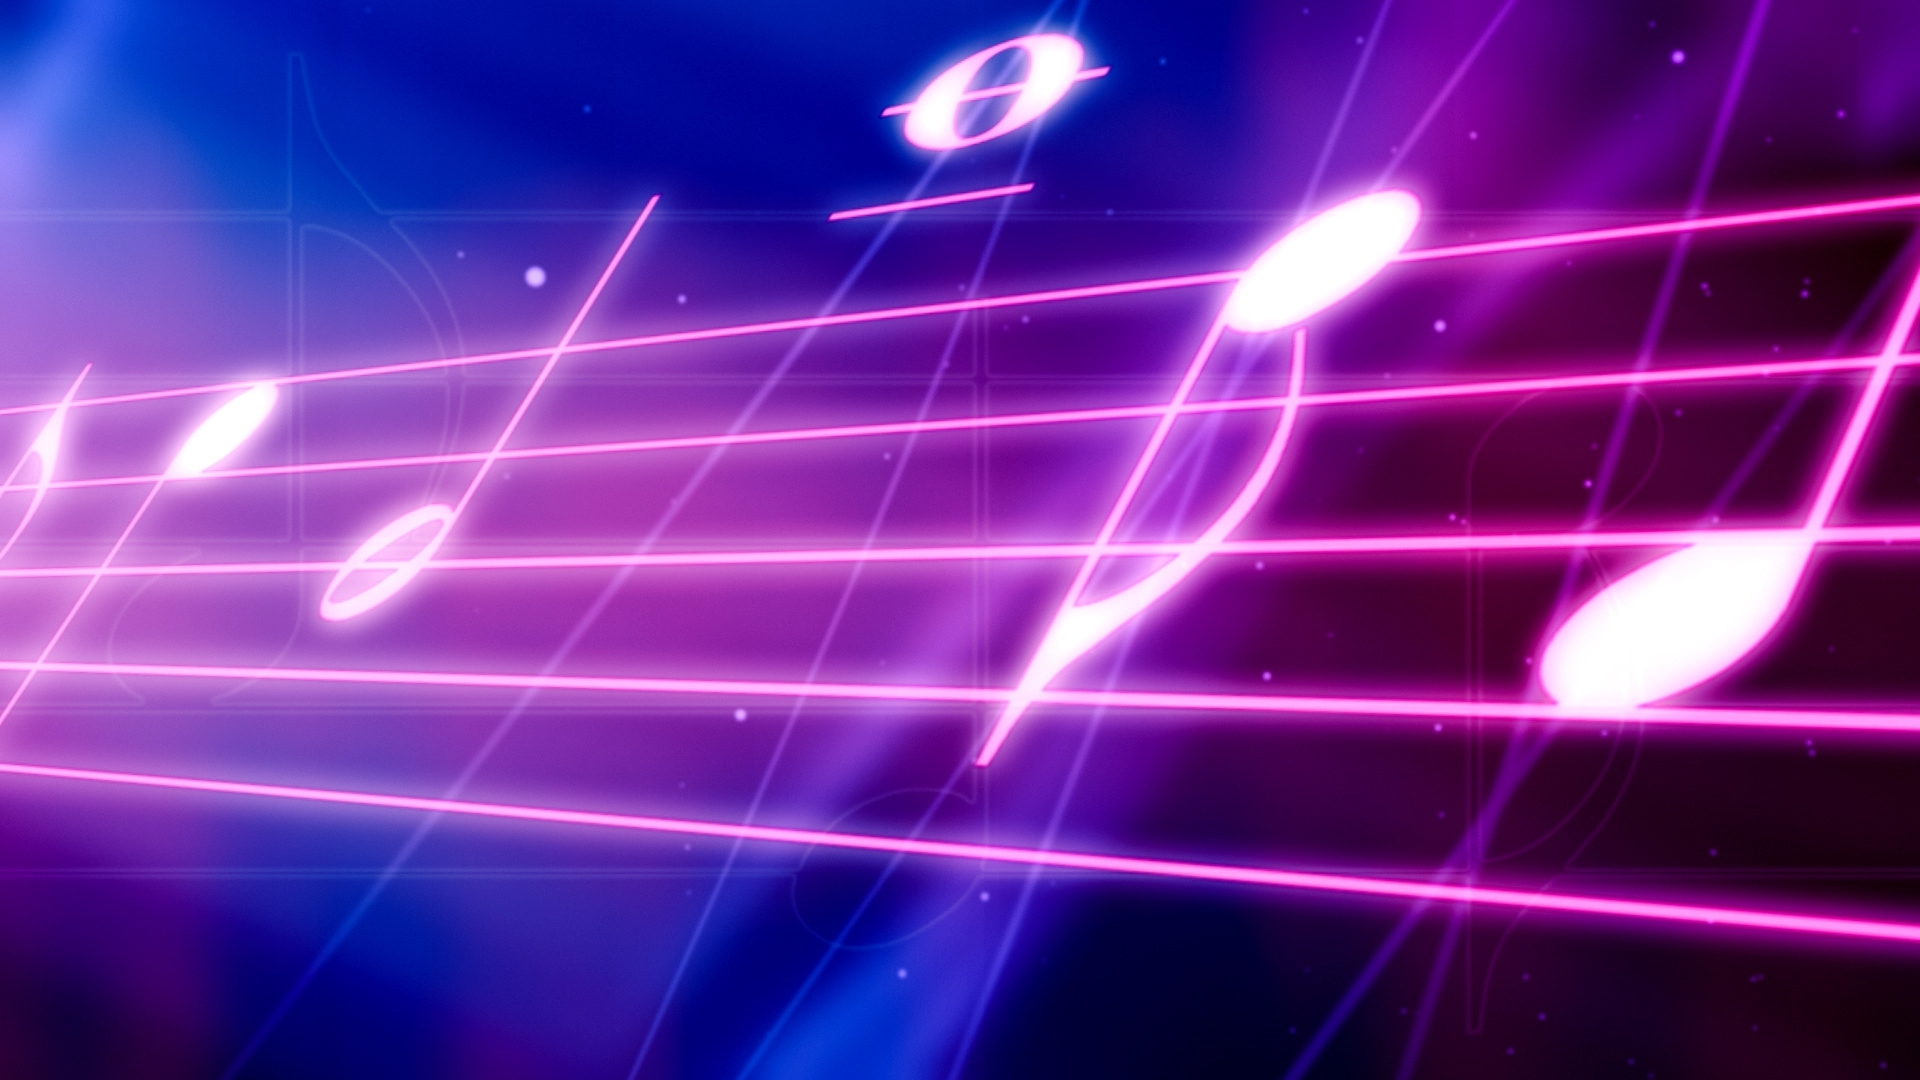 Cool Wallpaper Music Purple - music-notes-wallpaper-16211-1920x1080-px-hdwallsource  Pictures_519387.jpg